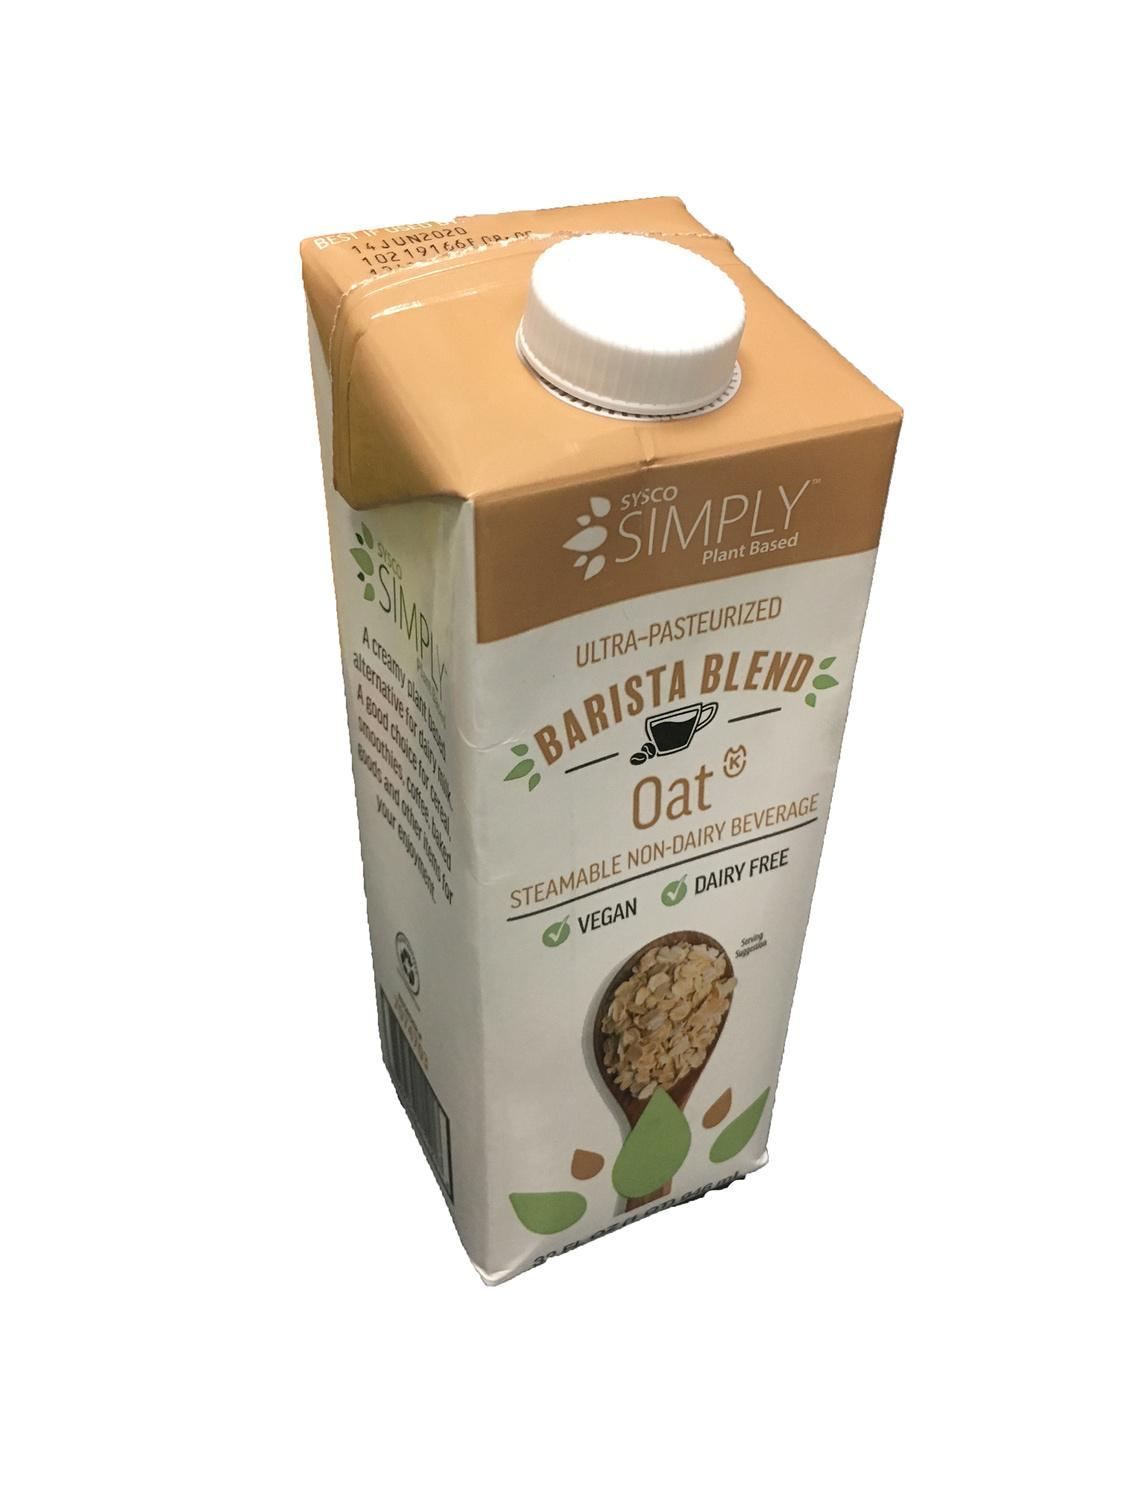 Image of Non-Dairy Oat Beverage